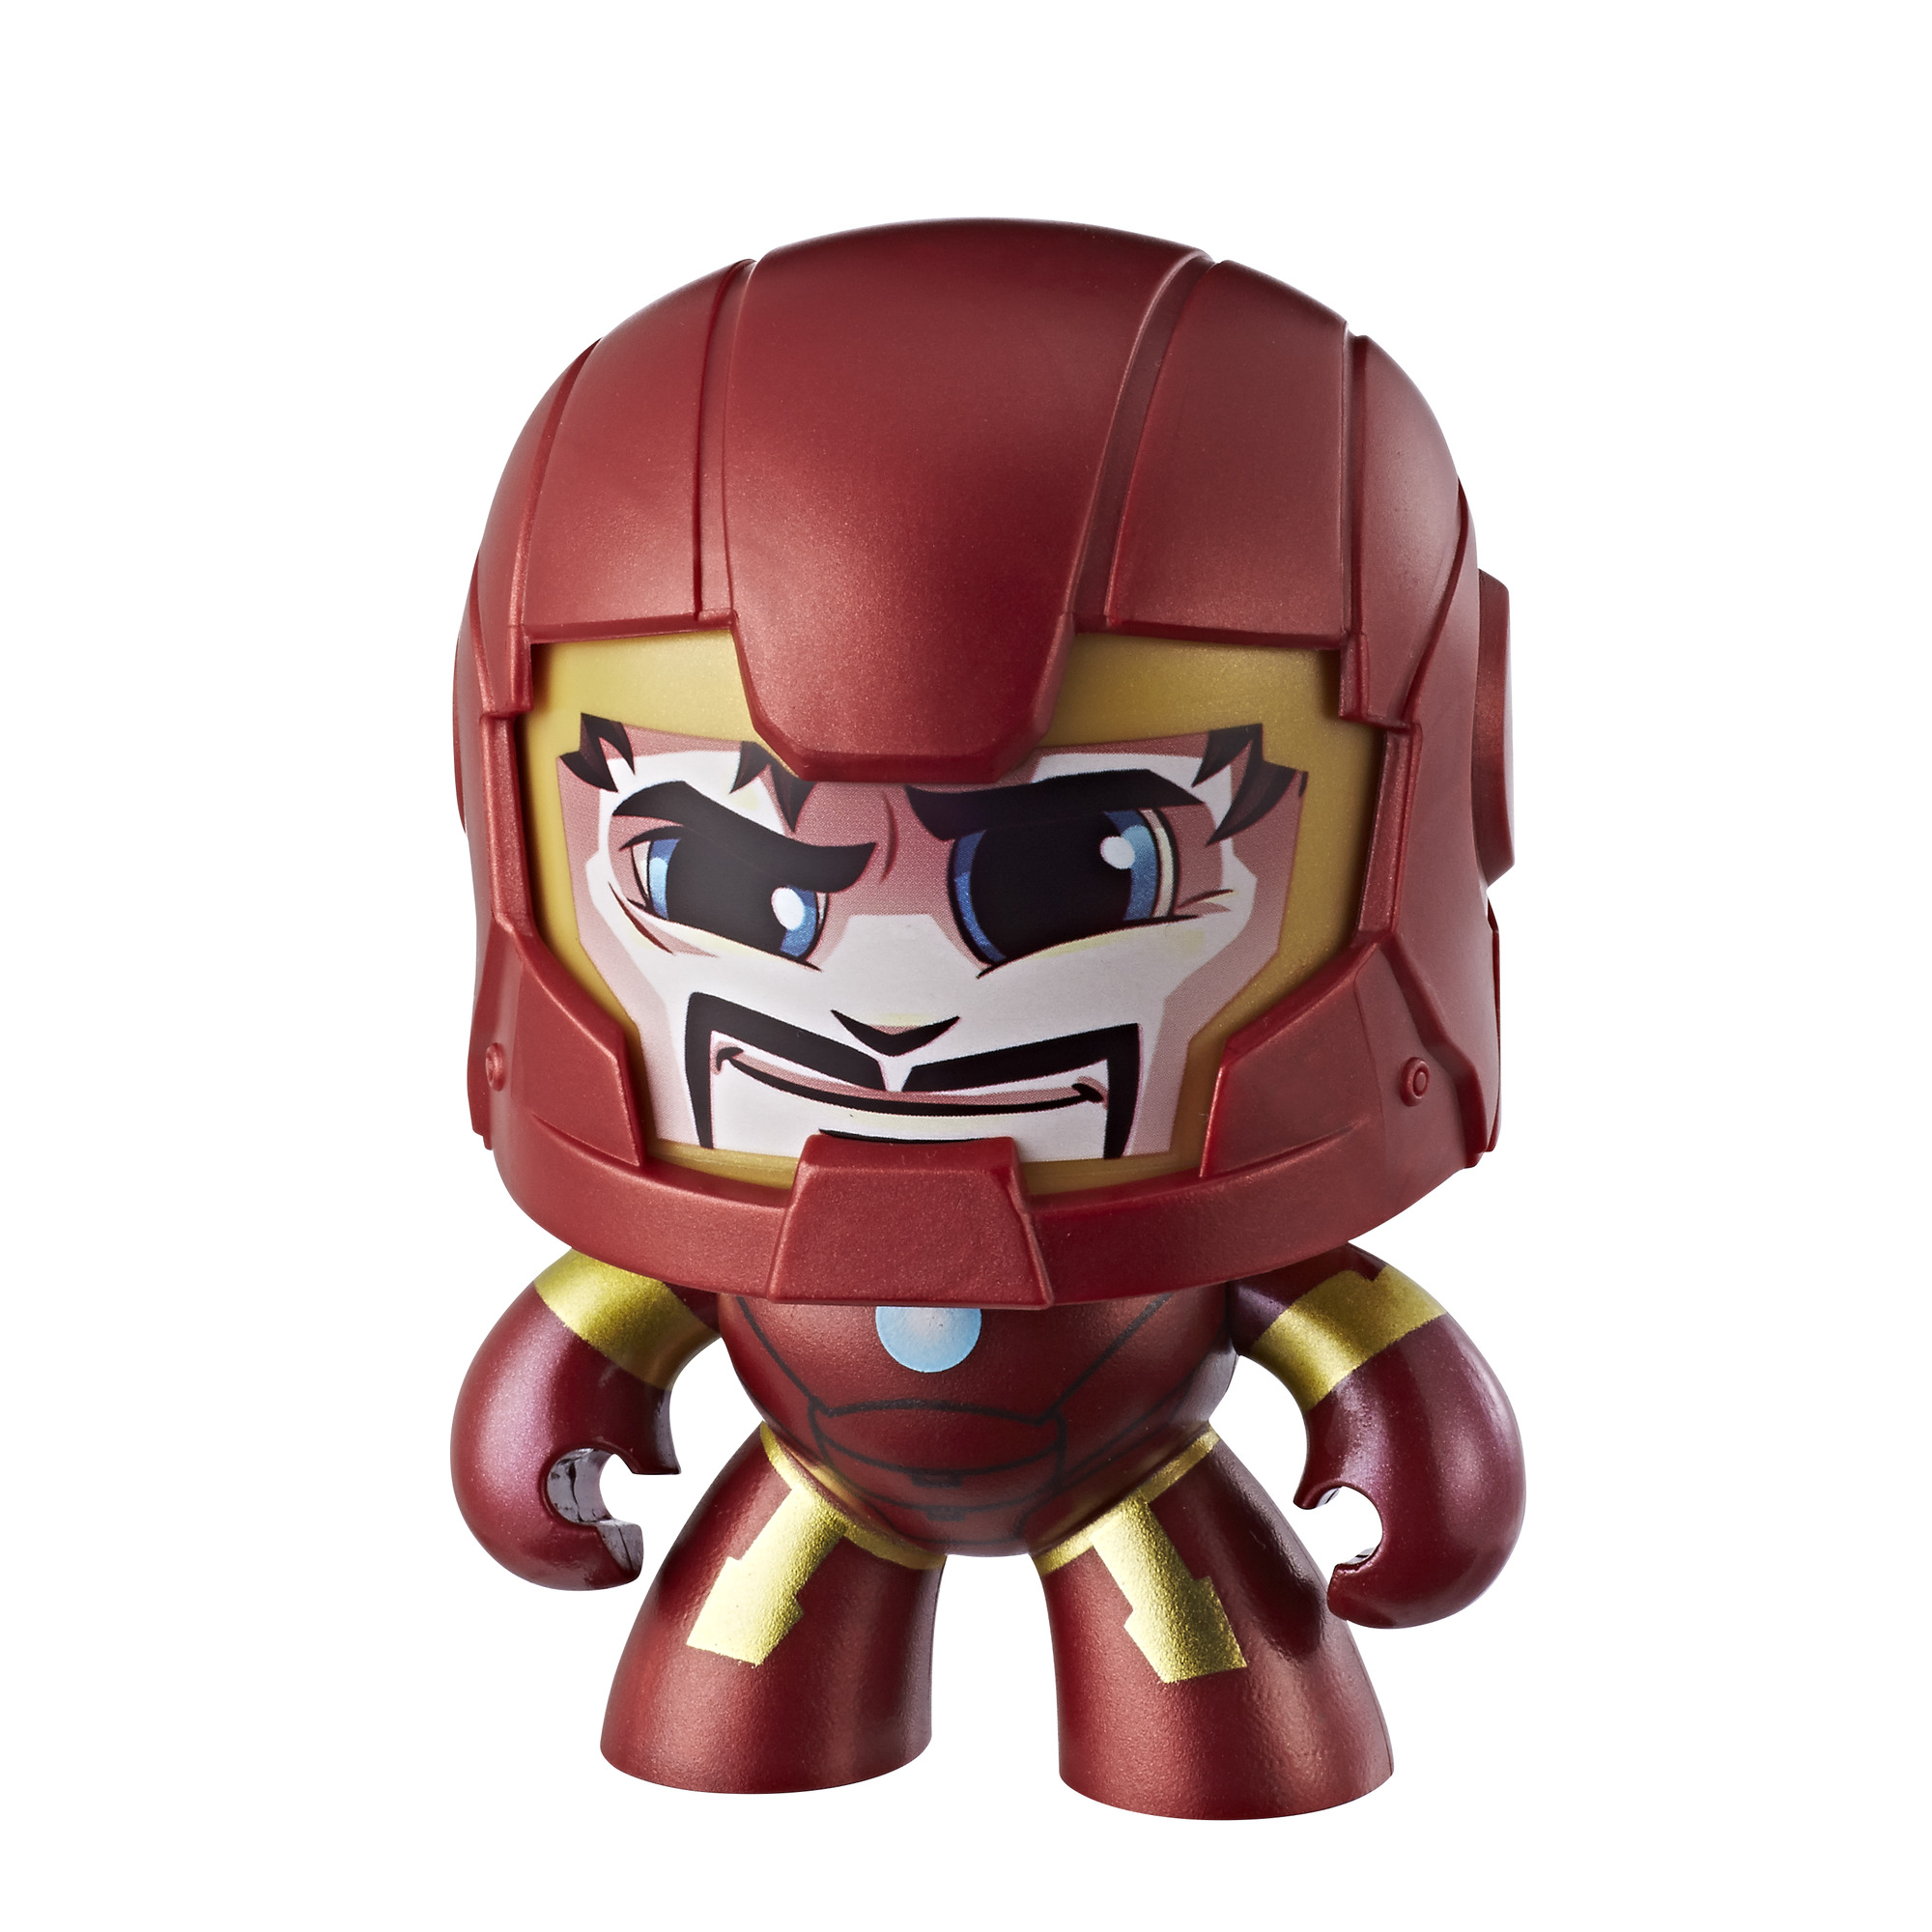 Hasbro Marvel Mighty Muggs Cool head Change Face Action Figures Toy Captain